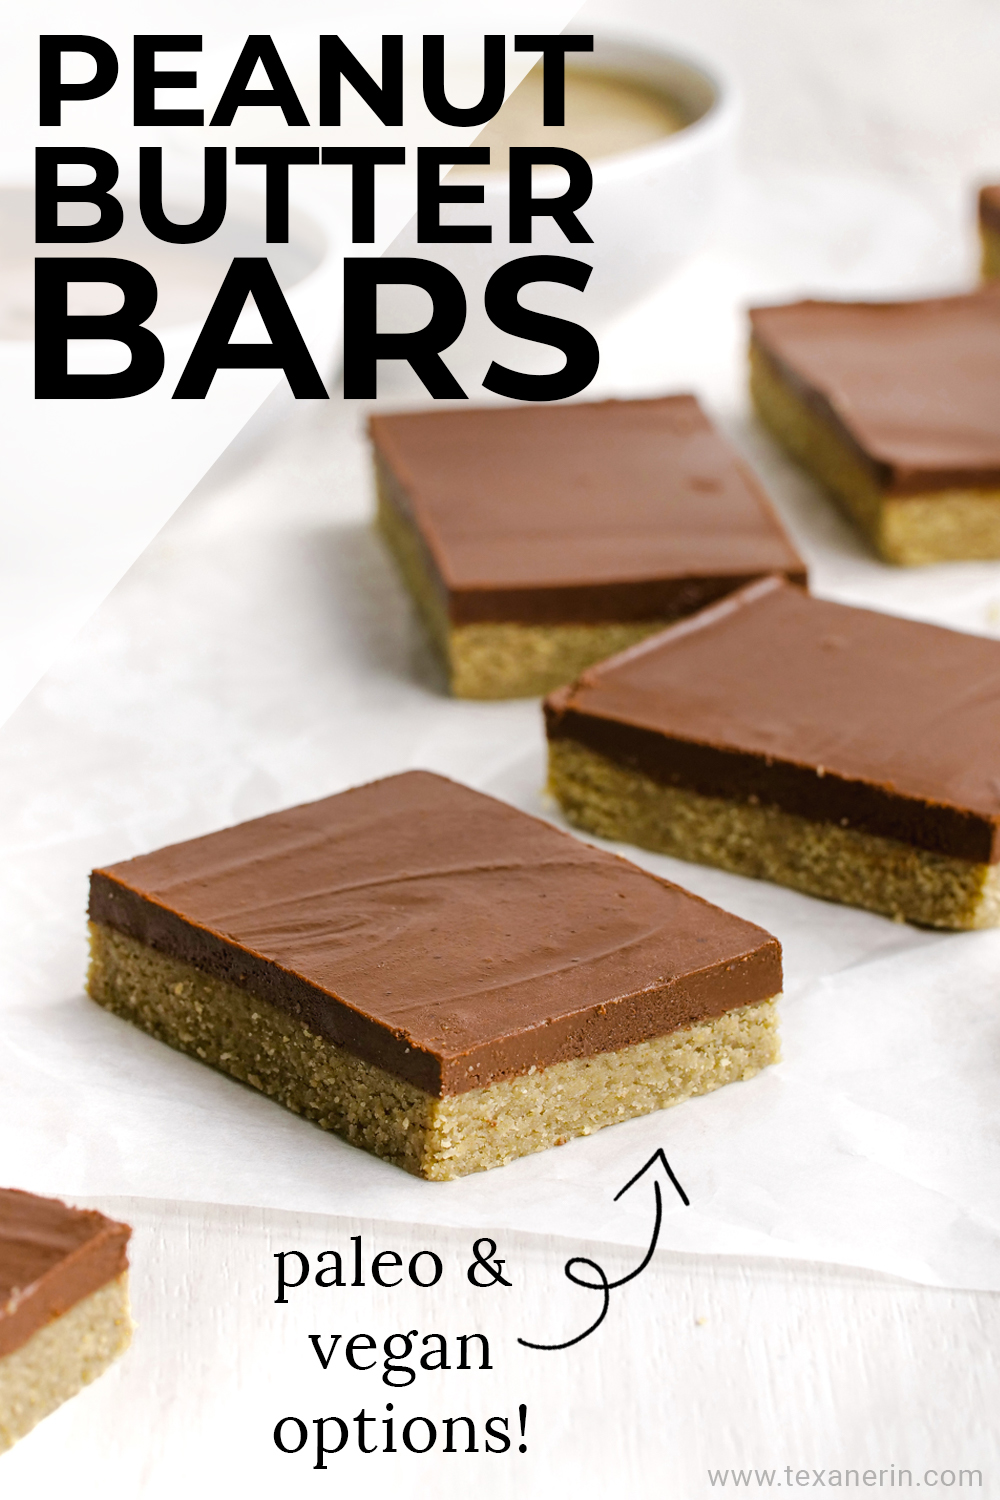 These delicious paleo peanut butter bars only use 5 ingredients, are no-bake, super easy to put together and are also vegan.